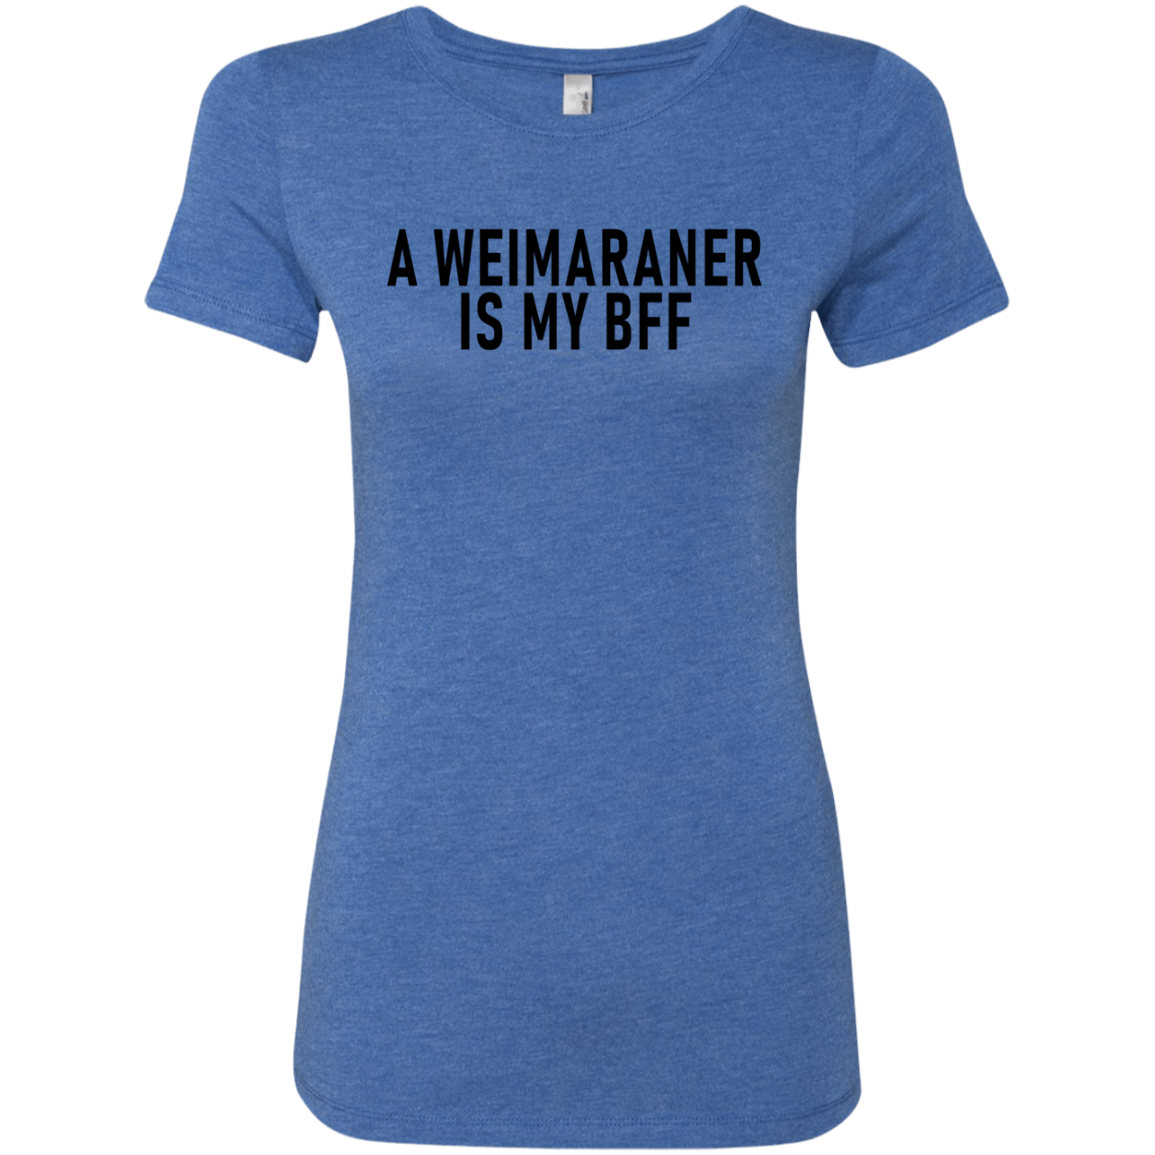 A Weimaraner Is My Bff Women's Classic Tee